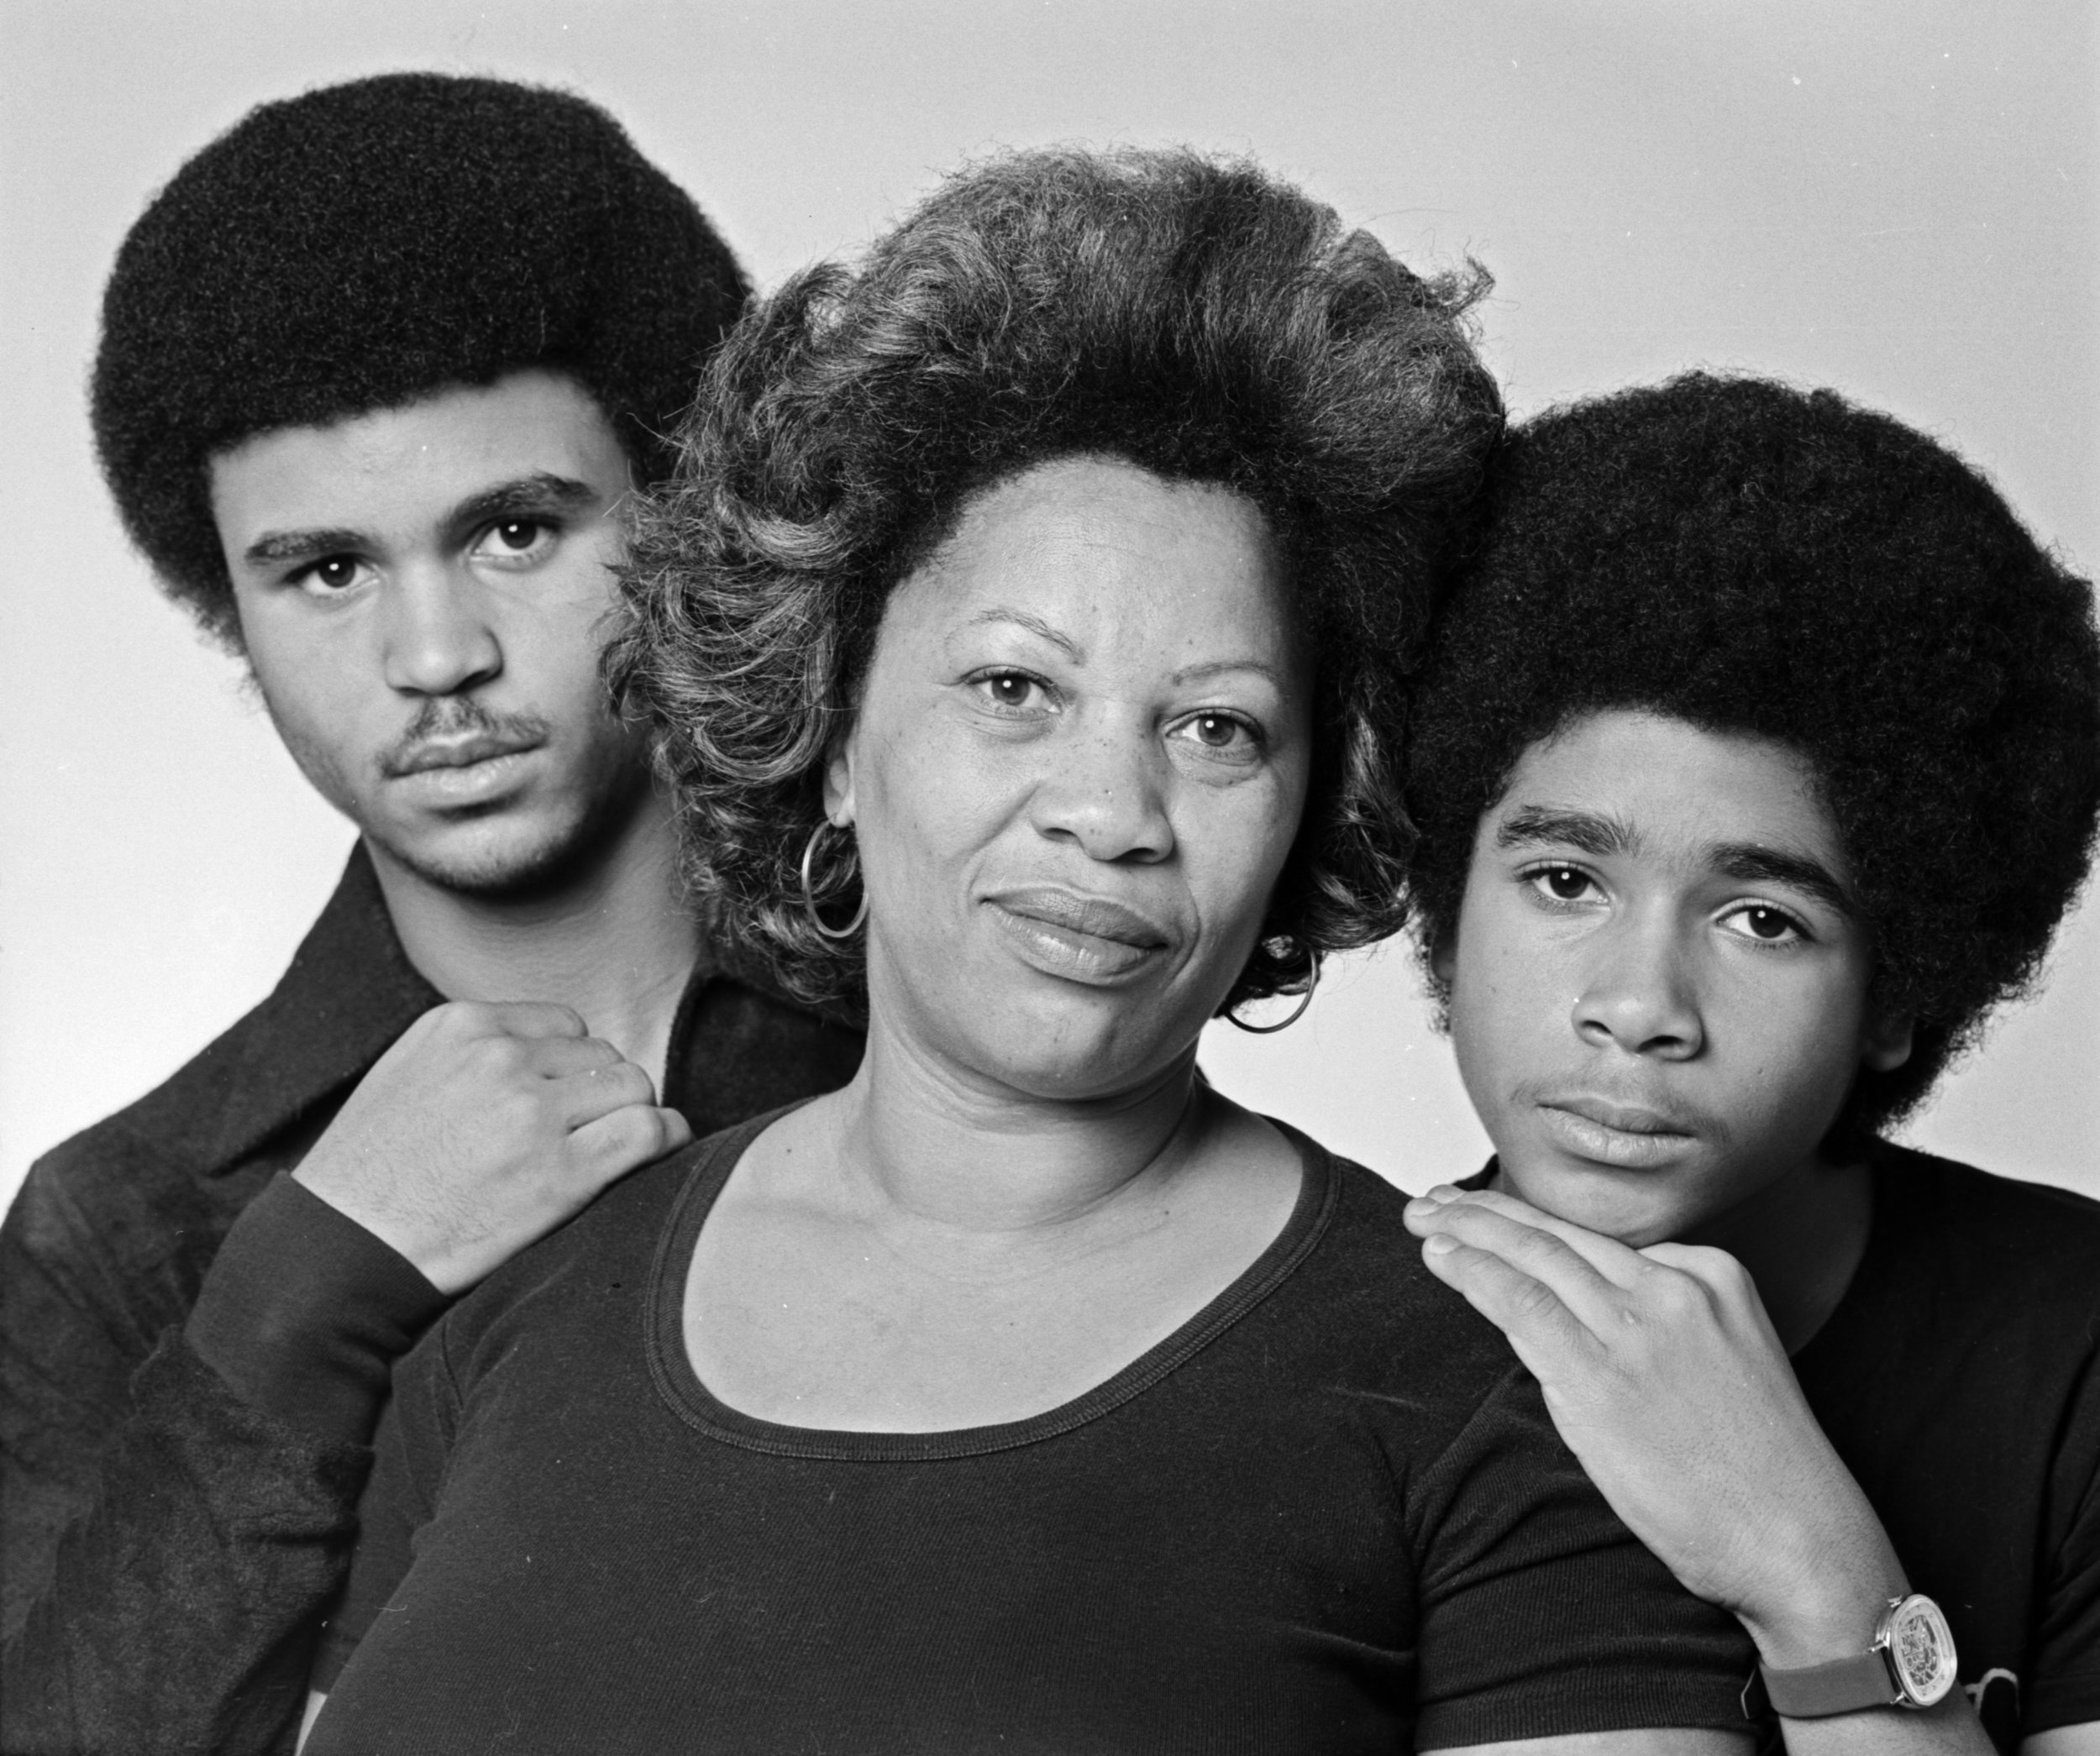 Morrison with her sons Slade and Ford in December 1978. (Photo by Jack Mitchell/Getty Images)